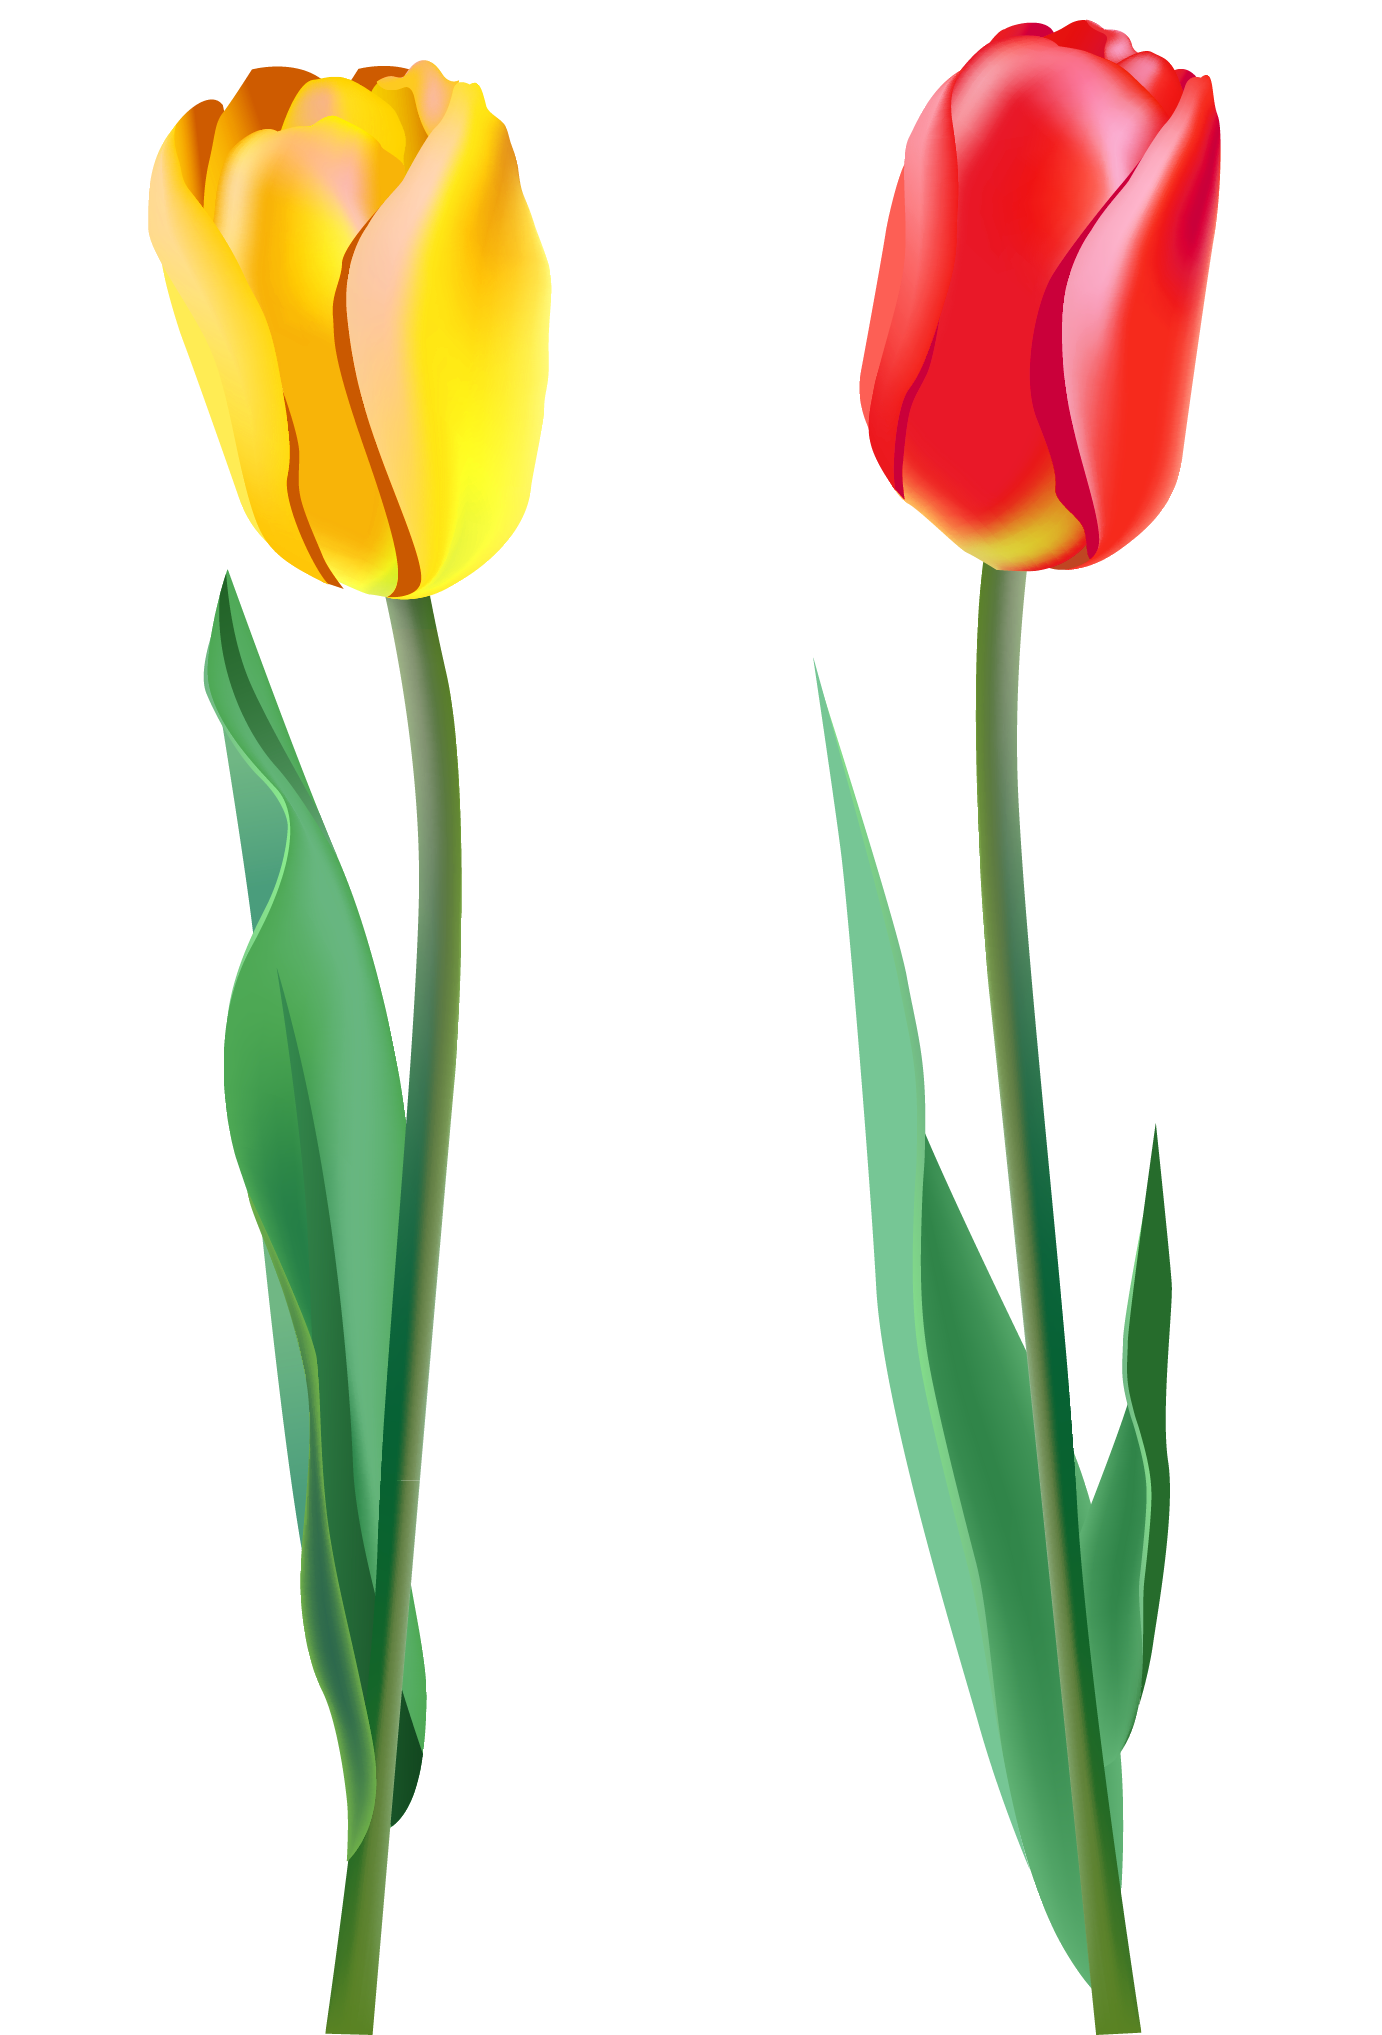 Transparent spring tulip. Tulips png clipart gallery